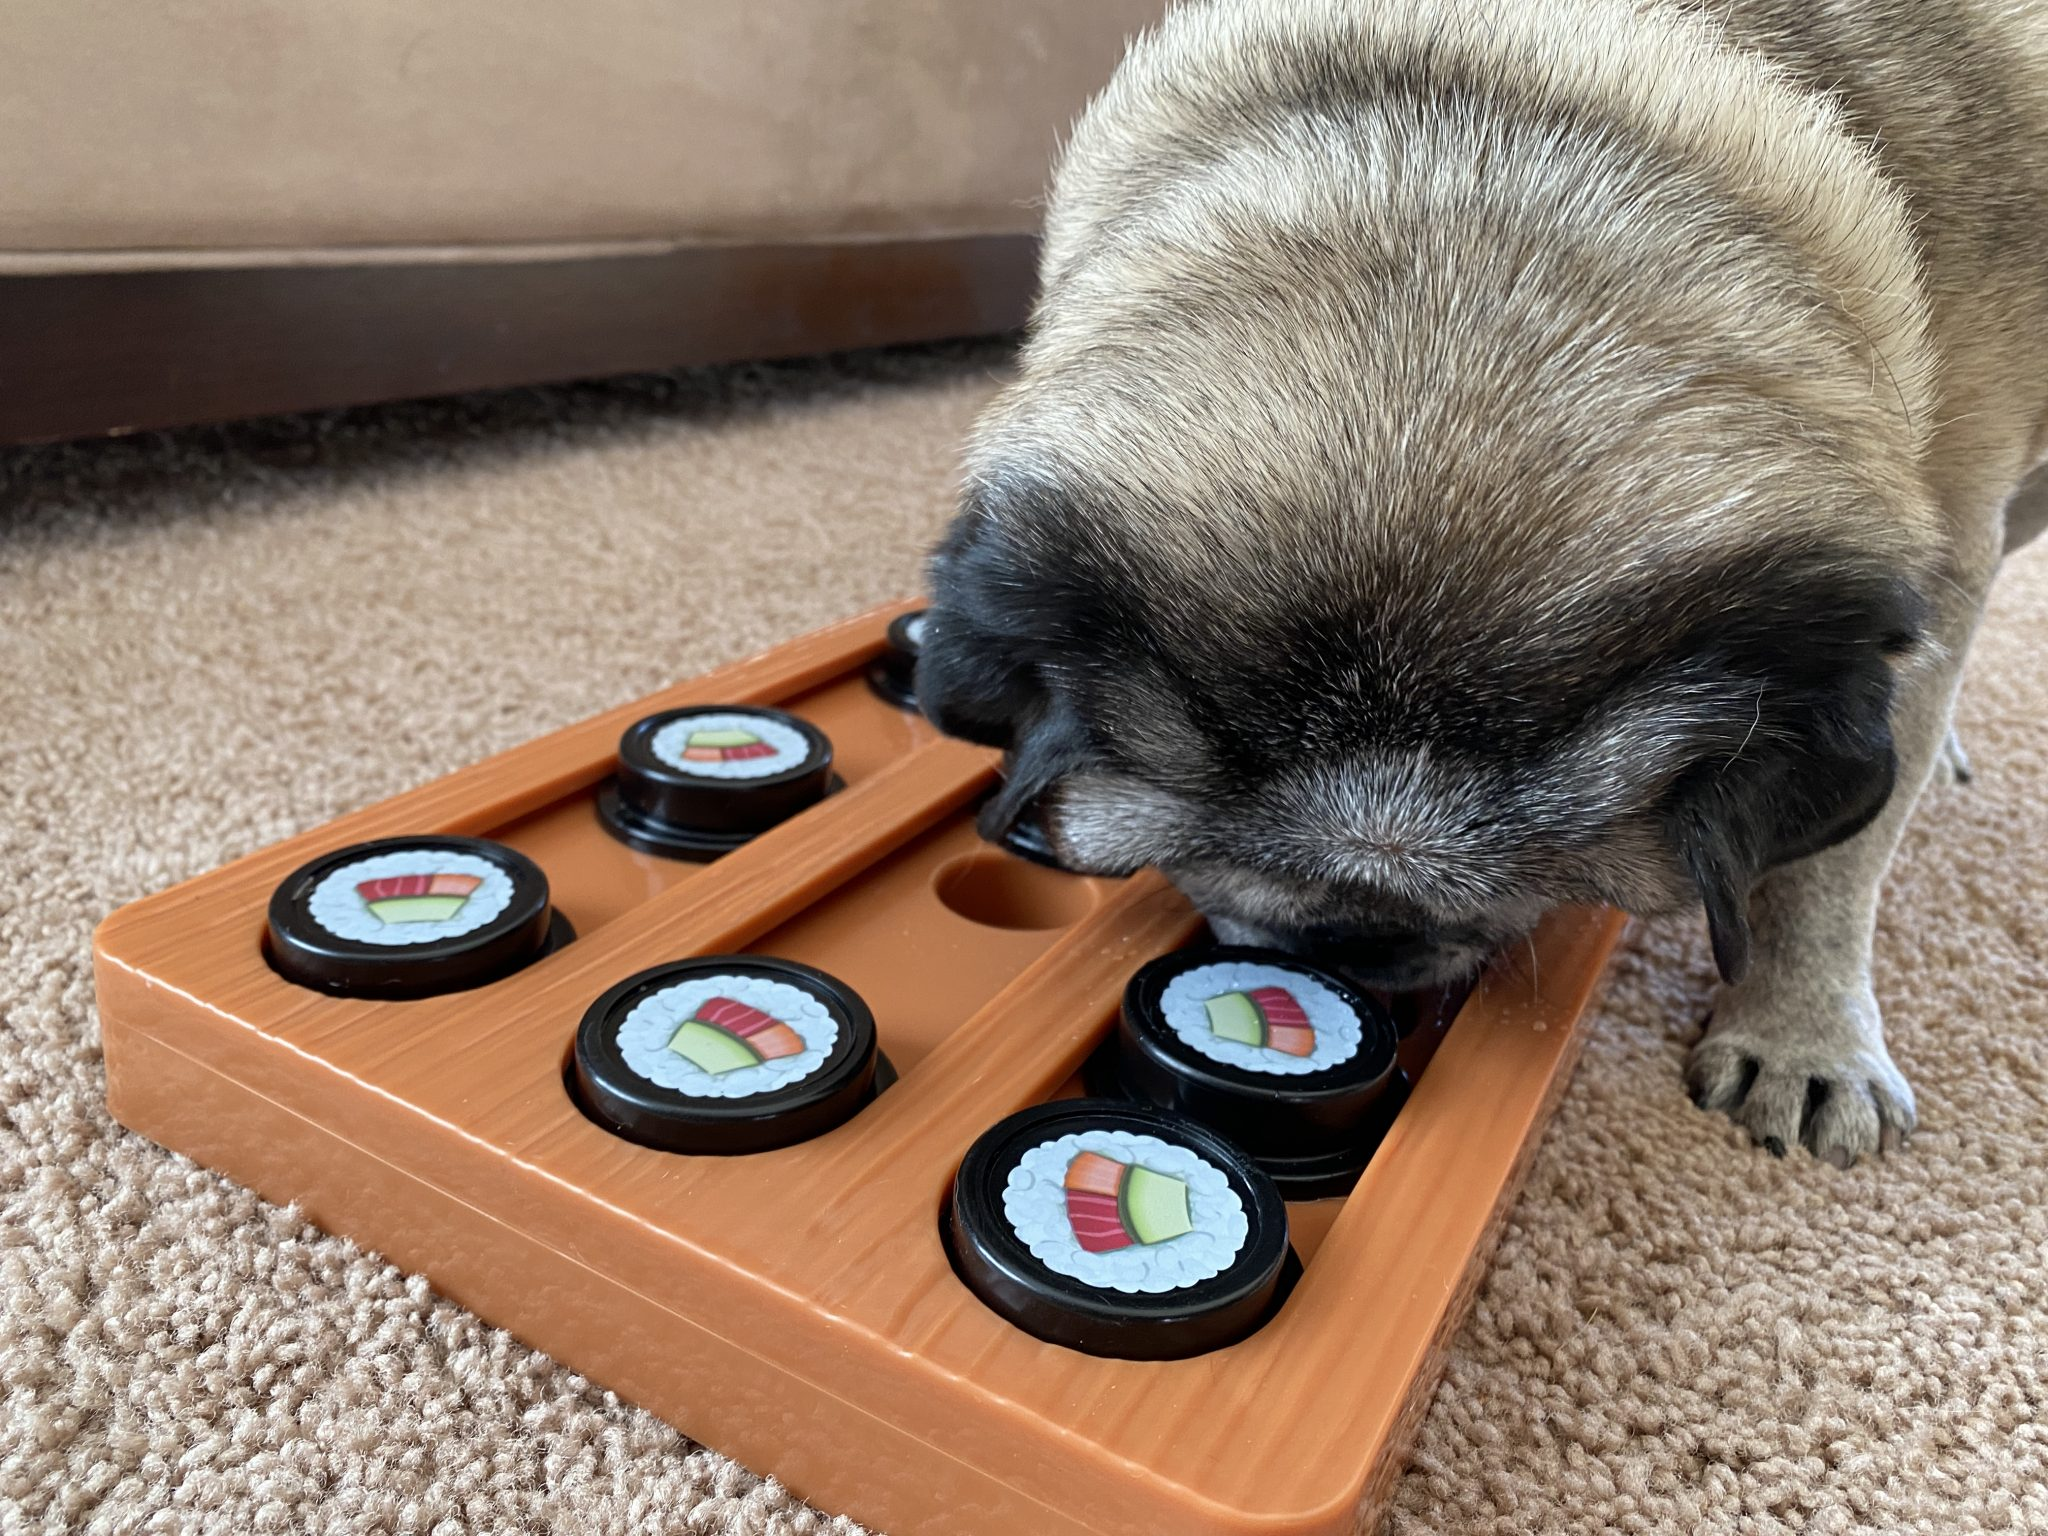 A pug navigating a sushi-themed puzzle toy